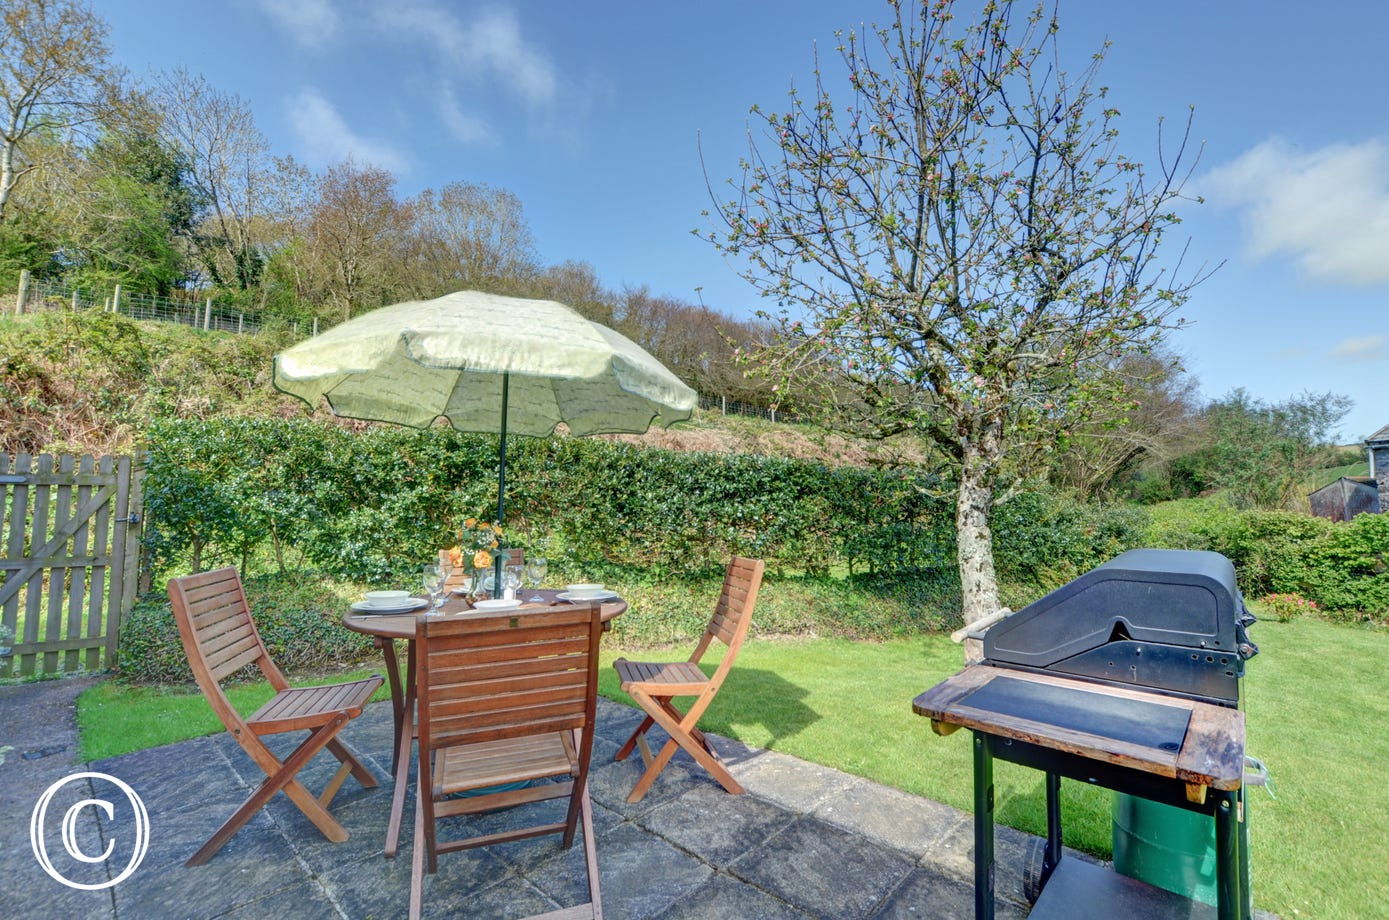 Relax in the rear garden and barbecue on the patio in the summer evenings